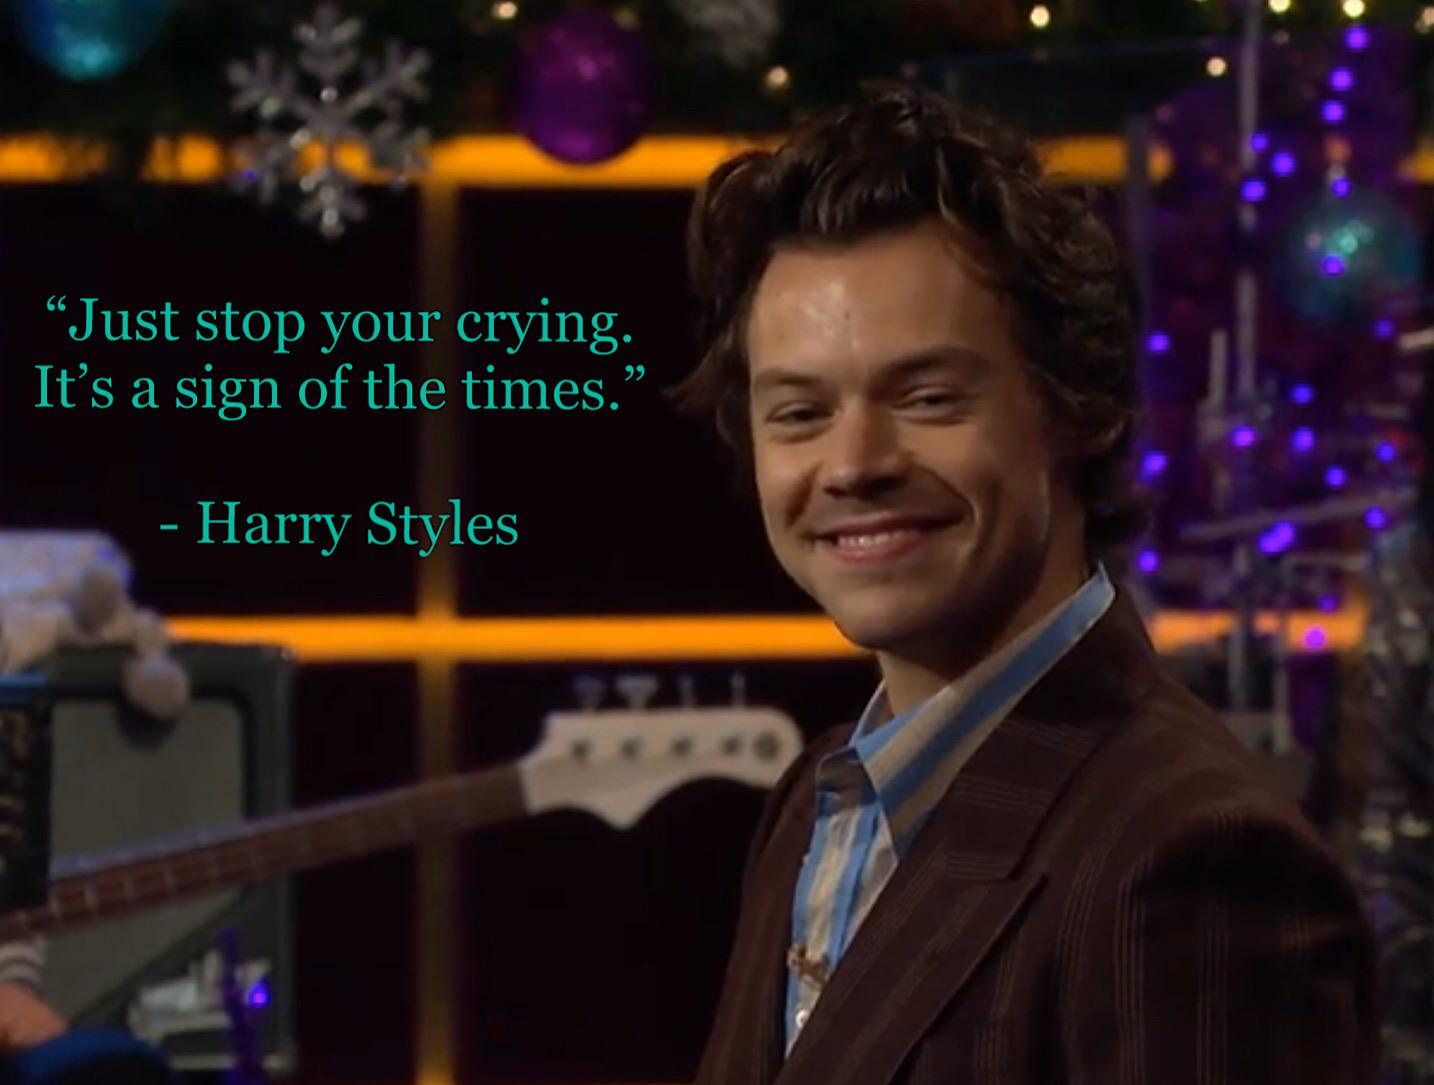 """Just stop your crying….."" – Harry Styles [1434 x 1085]"